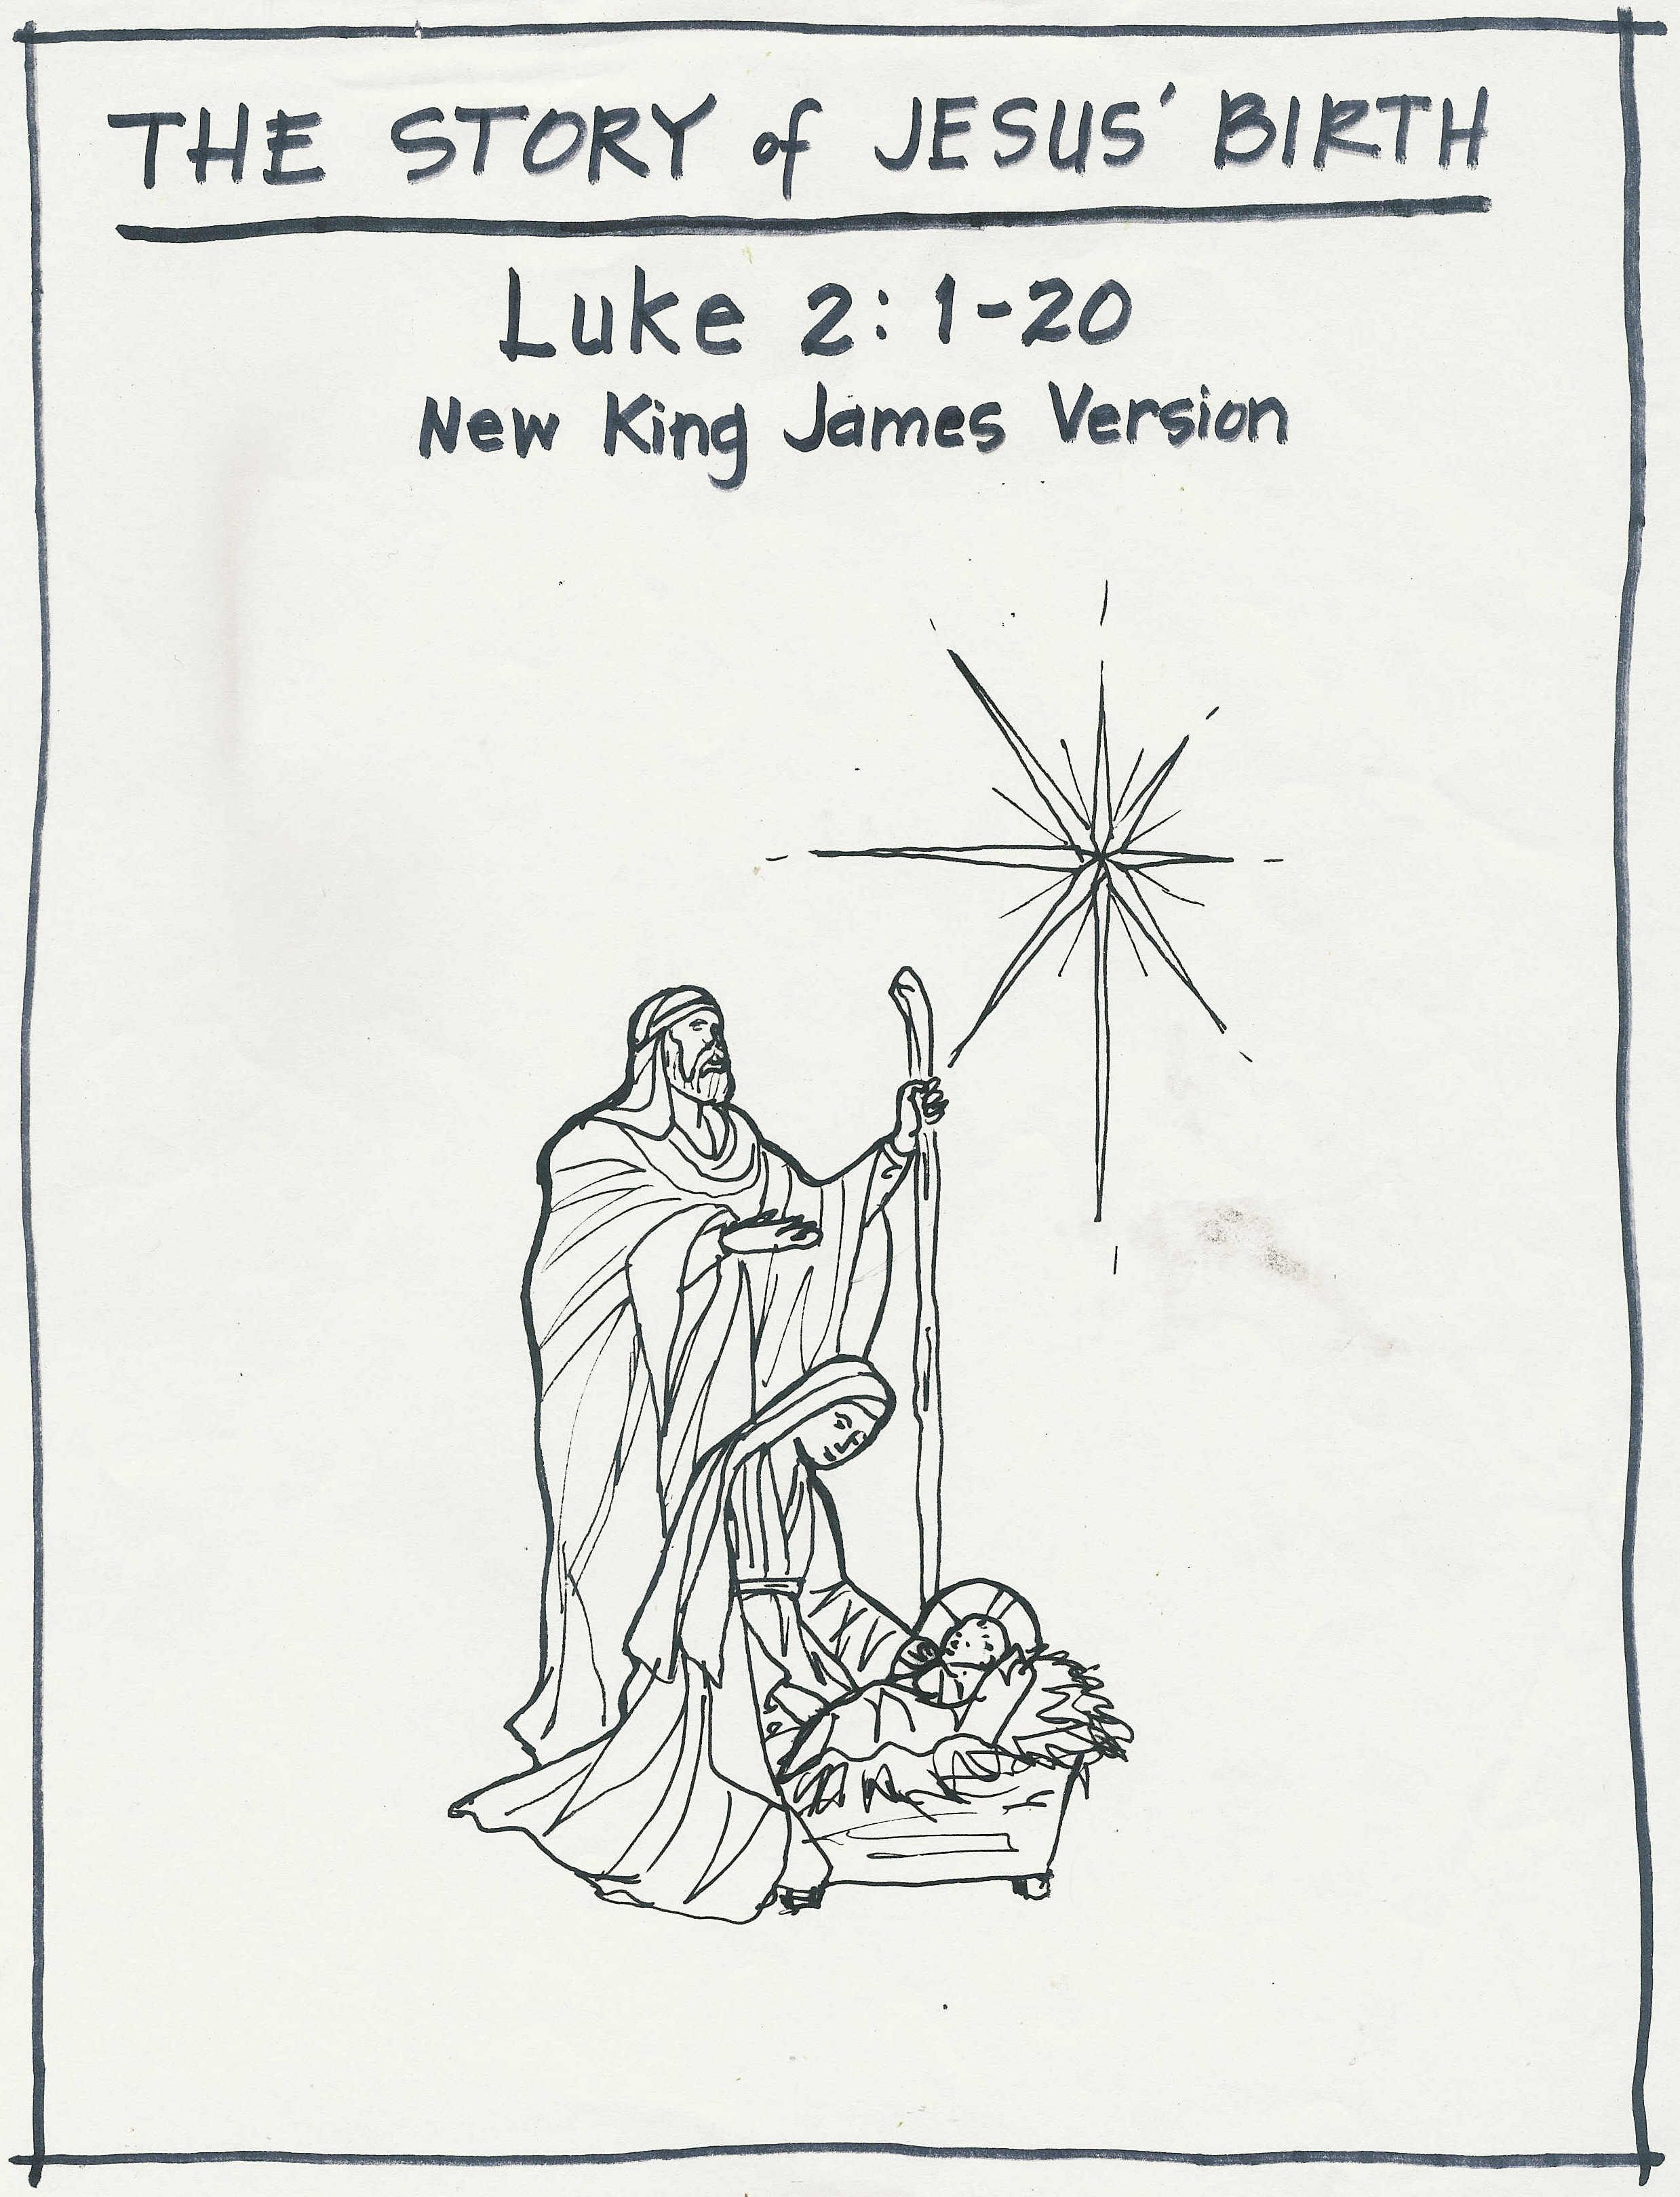 Download And Print Your Own Coloring Book For The Story Of Jesus Birth These Beautiful Black Line Drawings Were Created By My Friend Allison Sowell